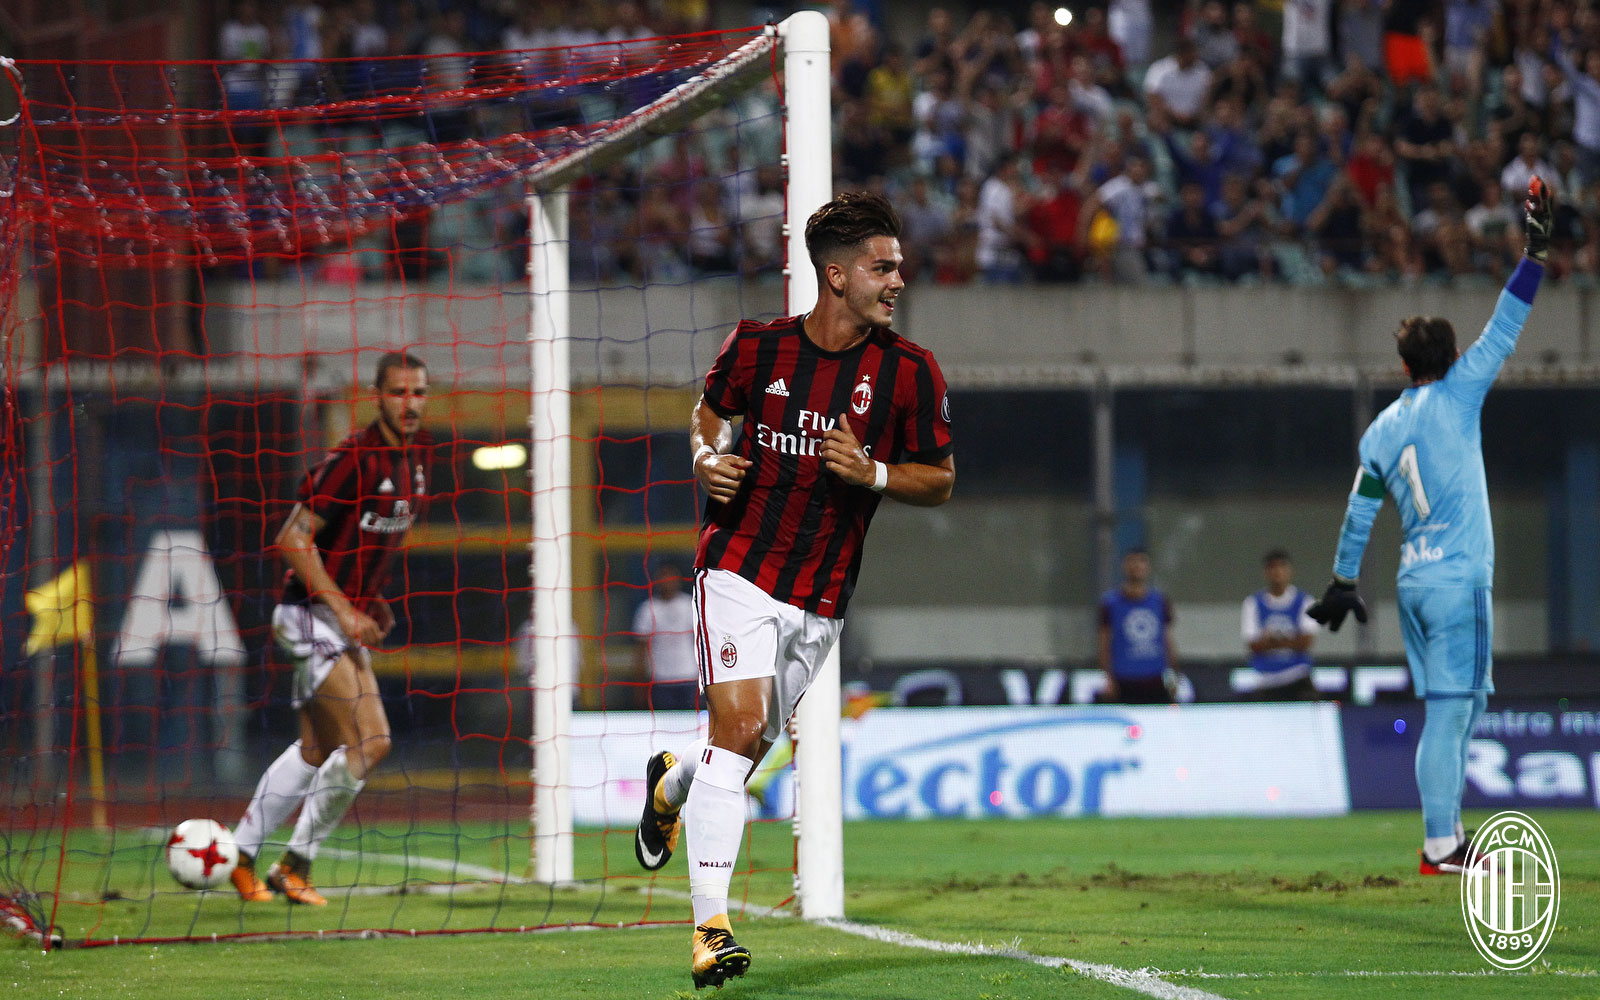 André Silva celebrating during Real Betis-Milan at Stadio Angelo Massimino on August 9th, 2017. (@acmilan.com)